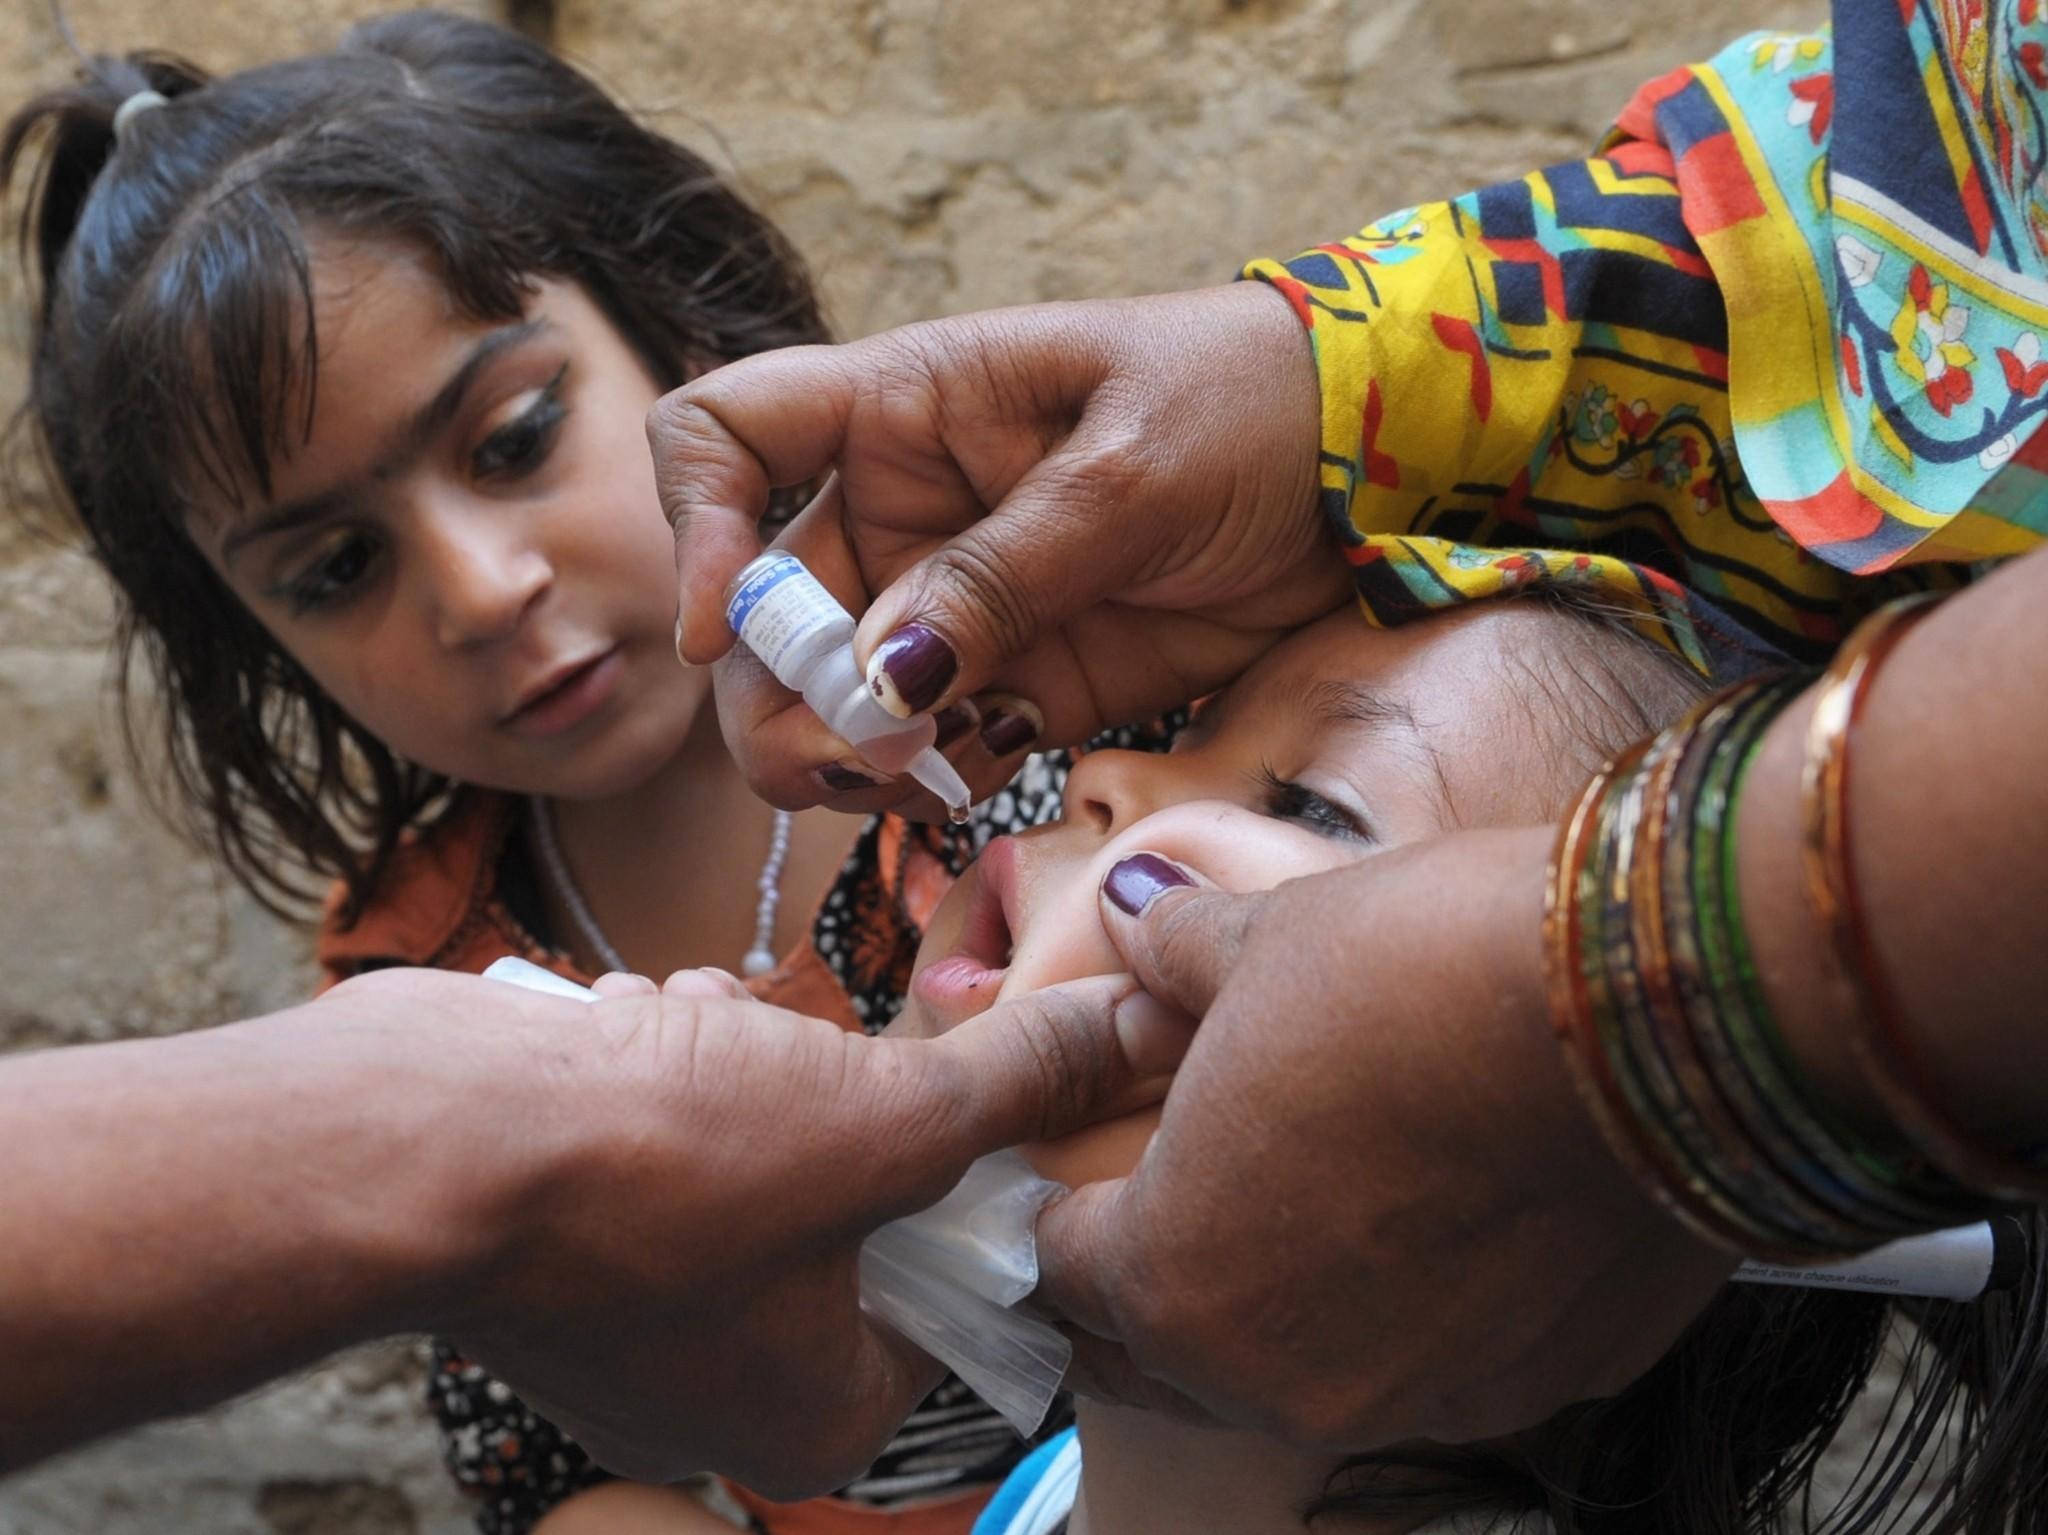 Pakistan may be polio free by next year:UNICEF health official